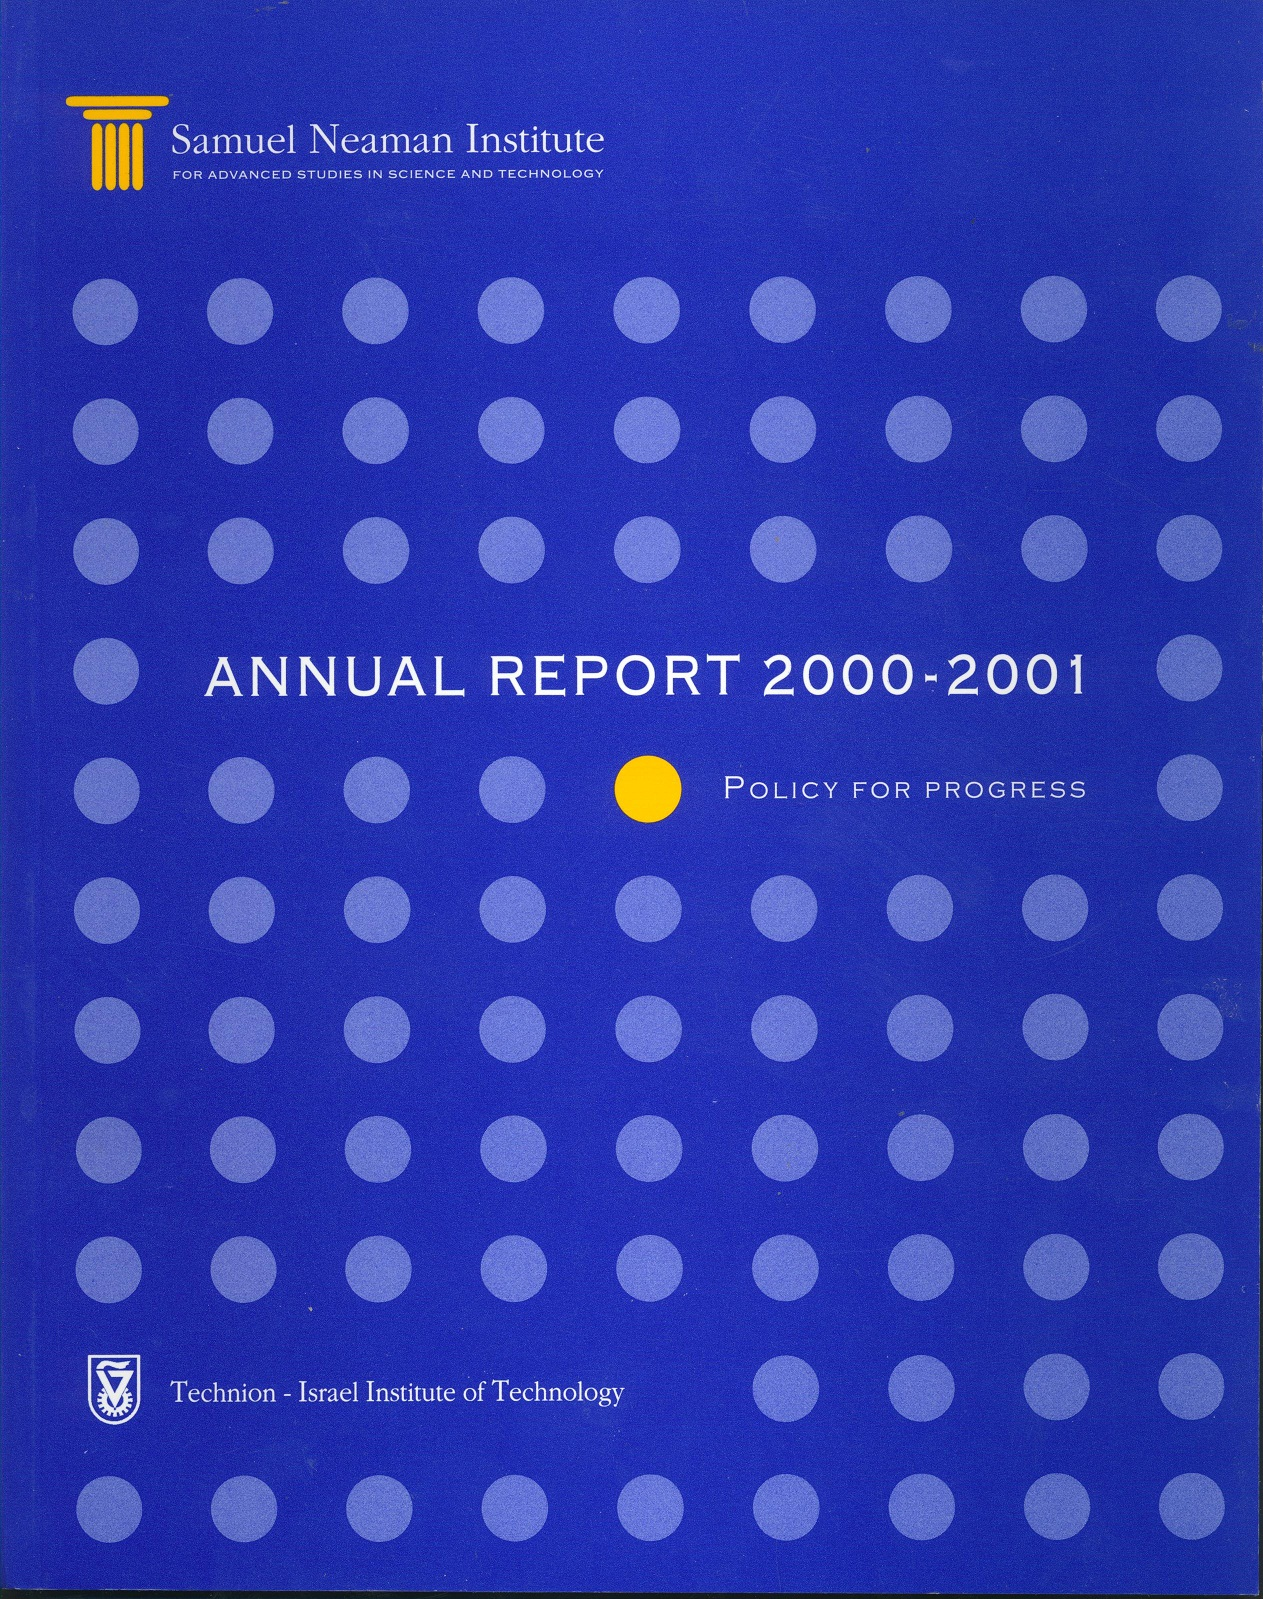 Annual Report 2000-2001 Samuel Neaman Institute